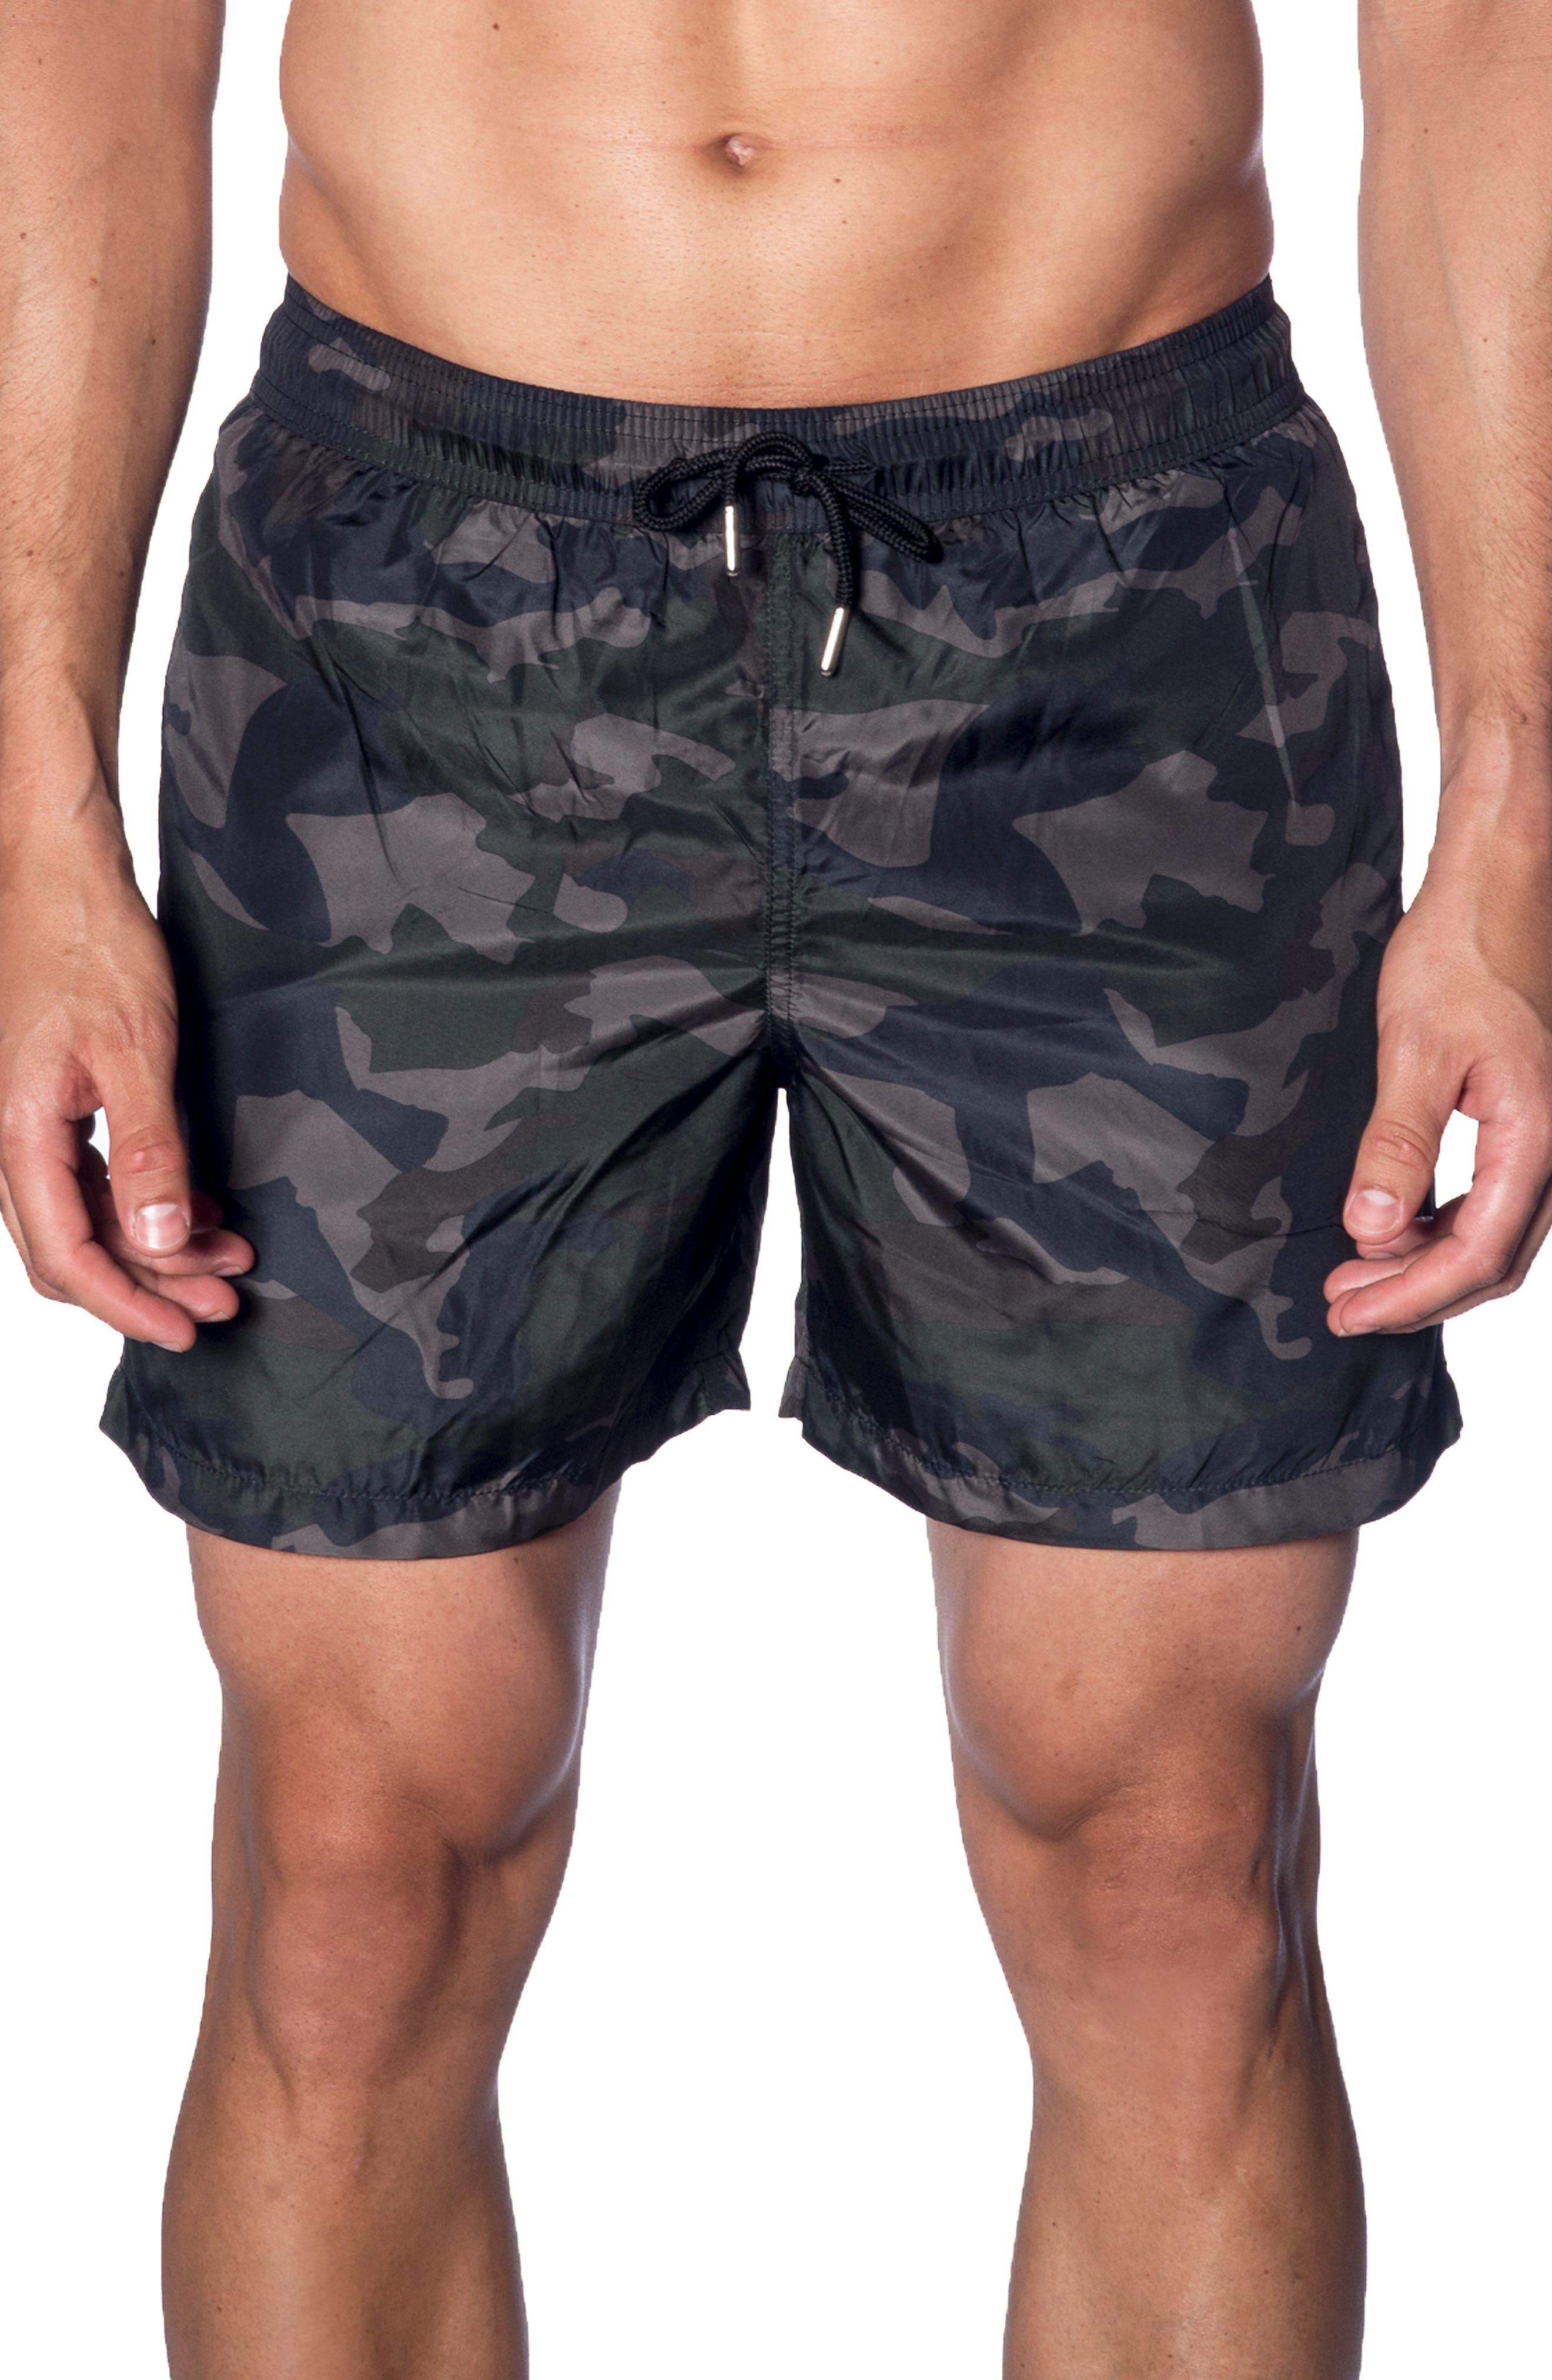 JARED LANG Camo Swim Trunks in Dark Green Camo